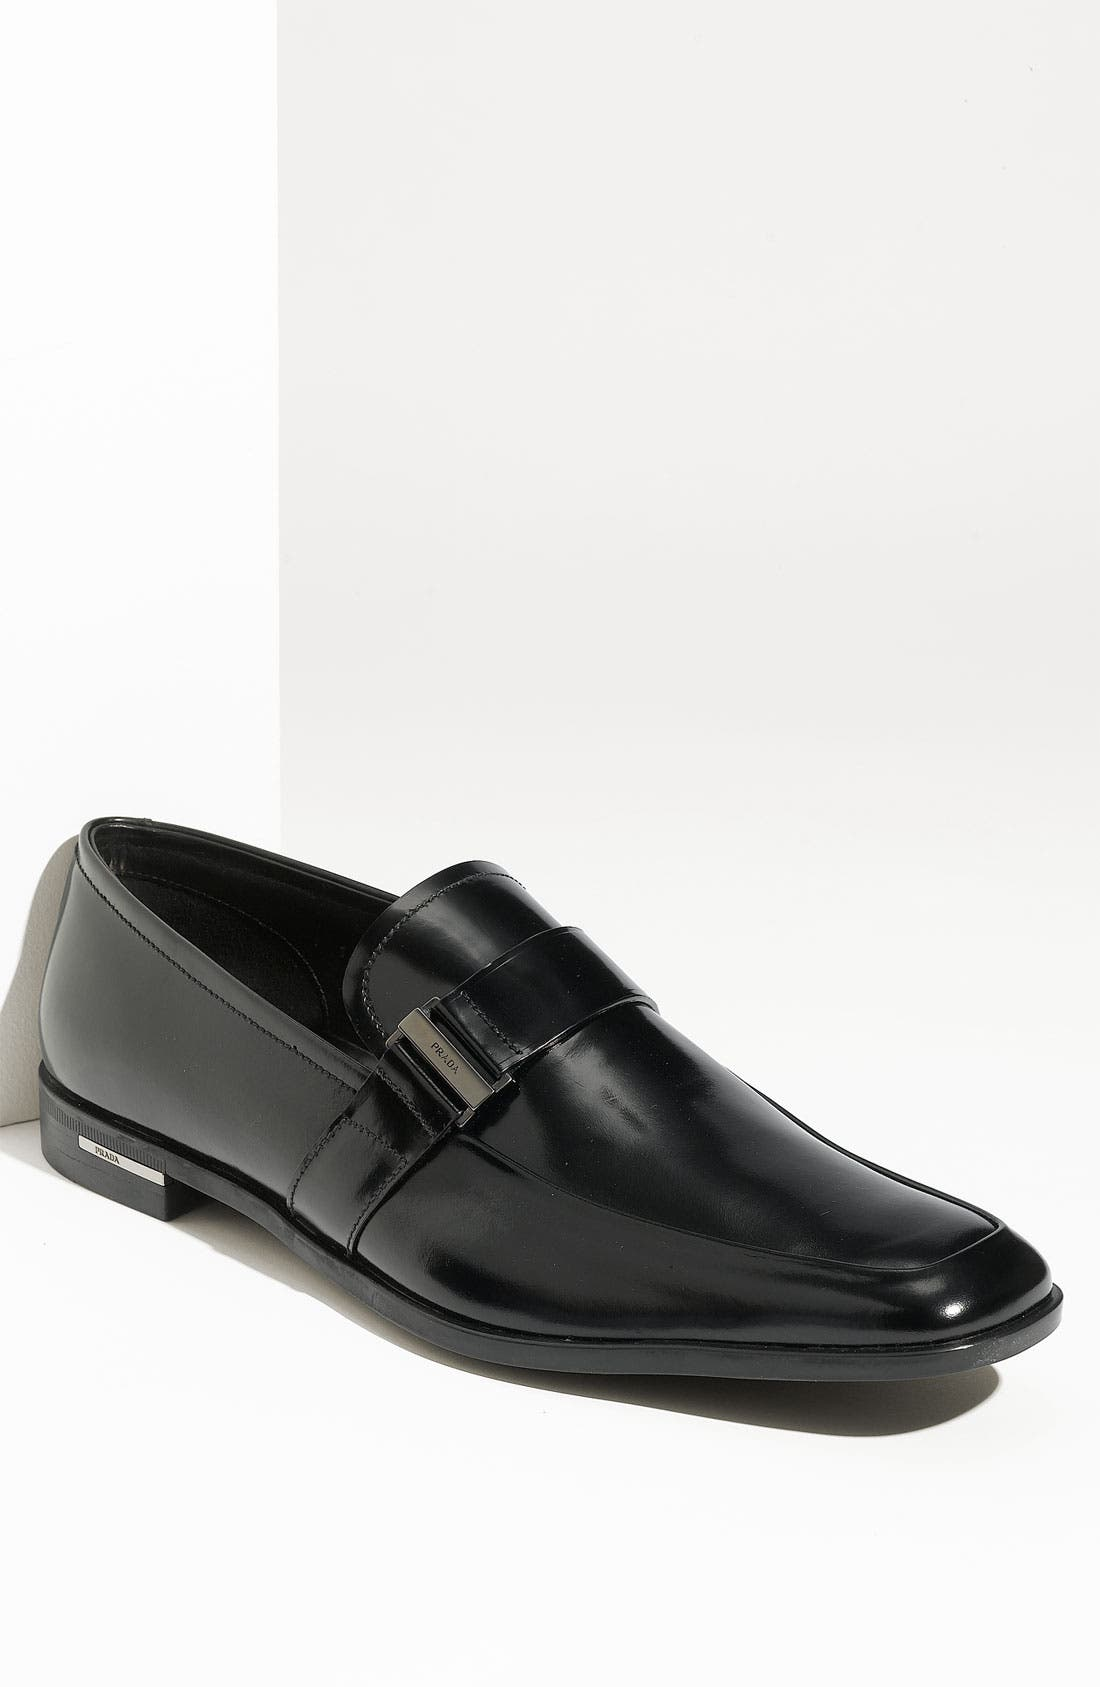 Alternate Image 1 Selected - Prada Buckled Leather Slip On (Men)